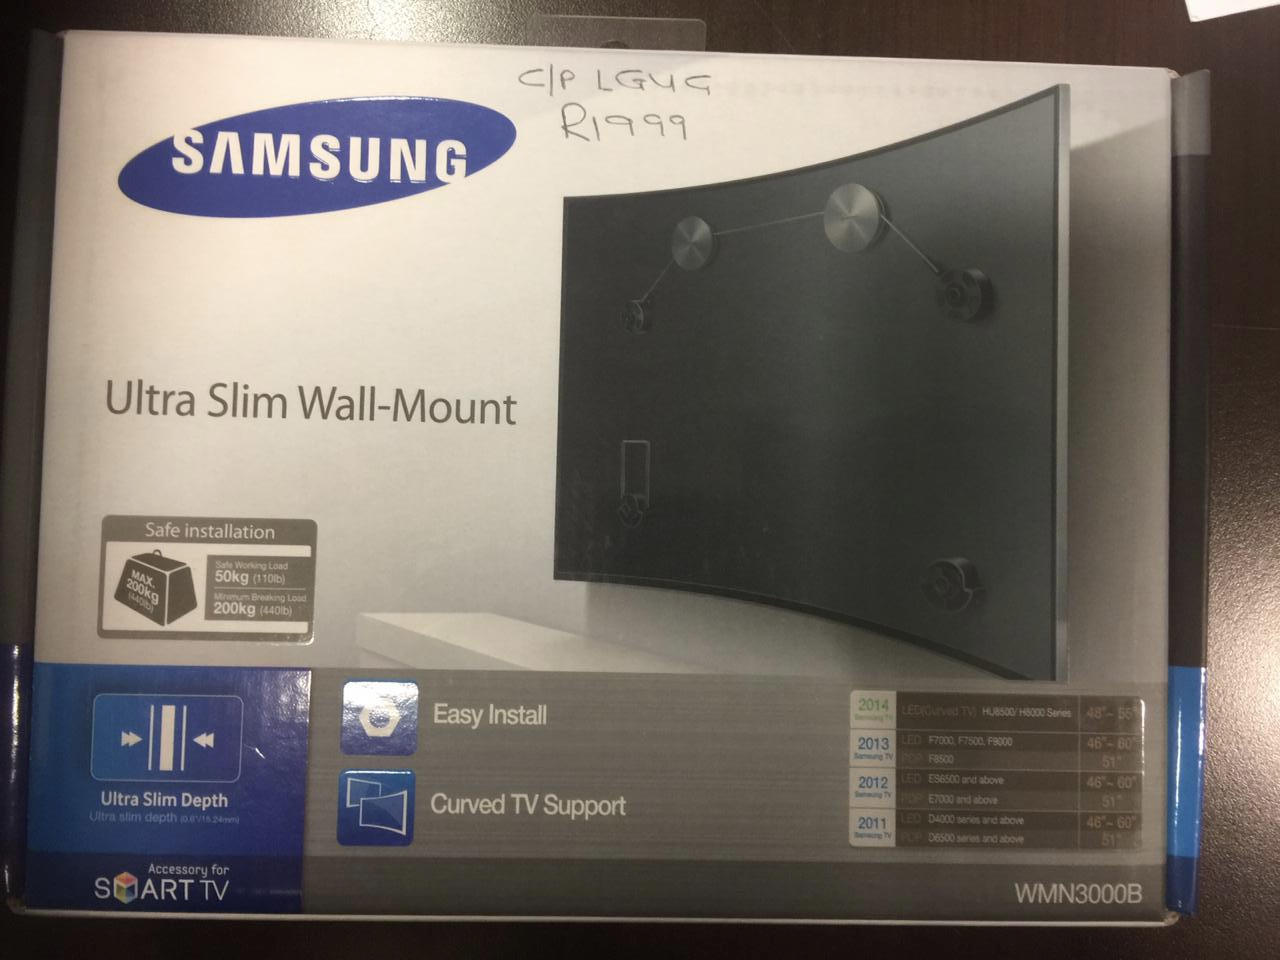 Samsung TV wall mounting bracket system for the fixing of the TV close up agains